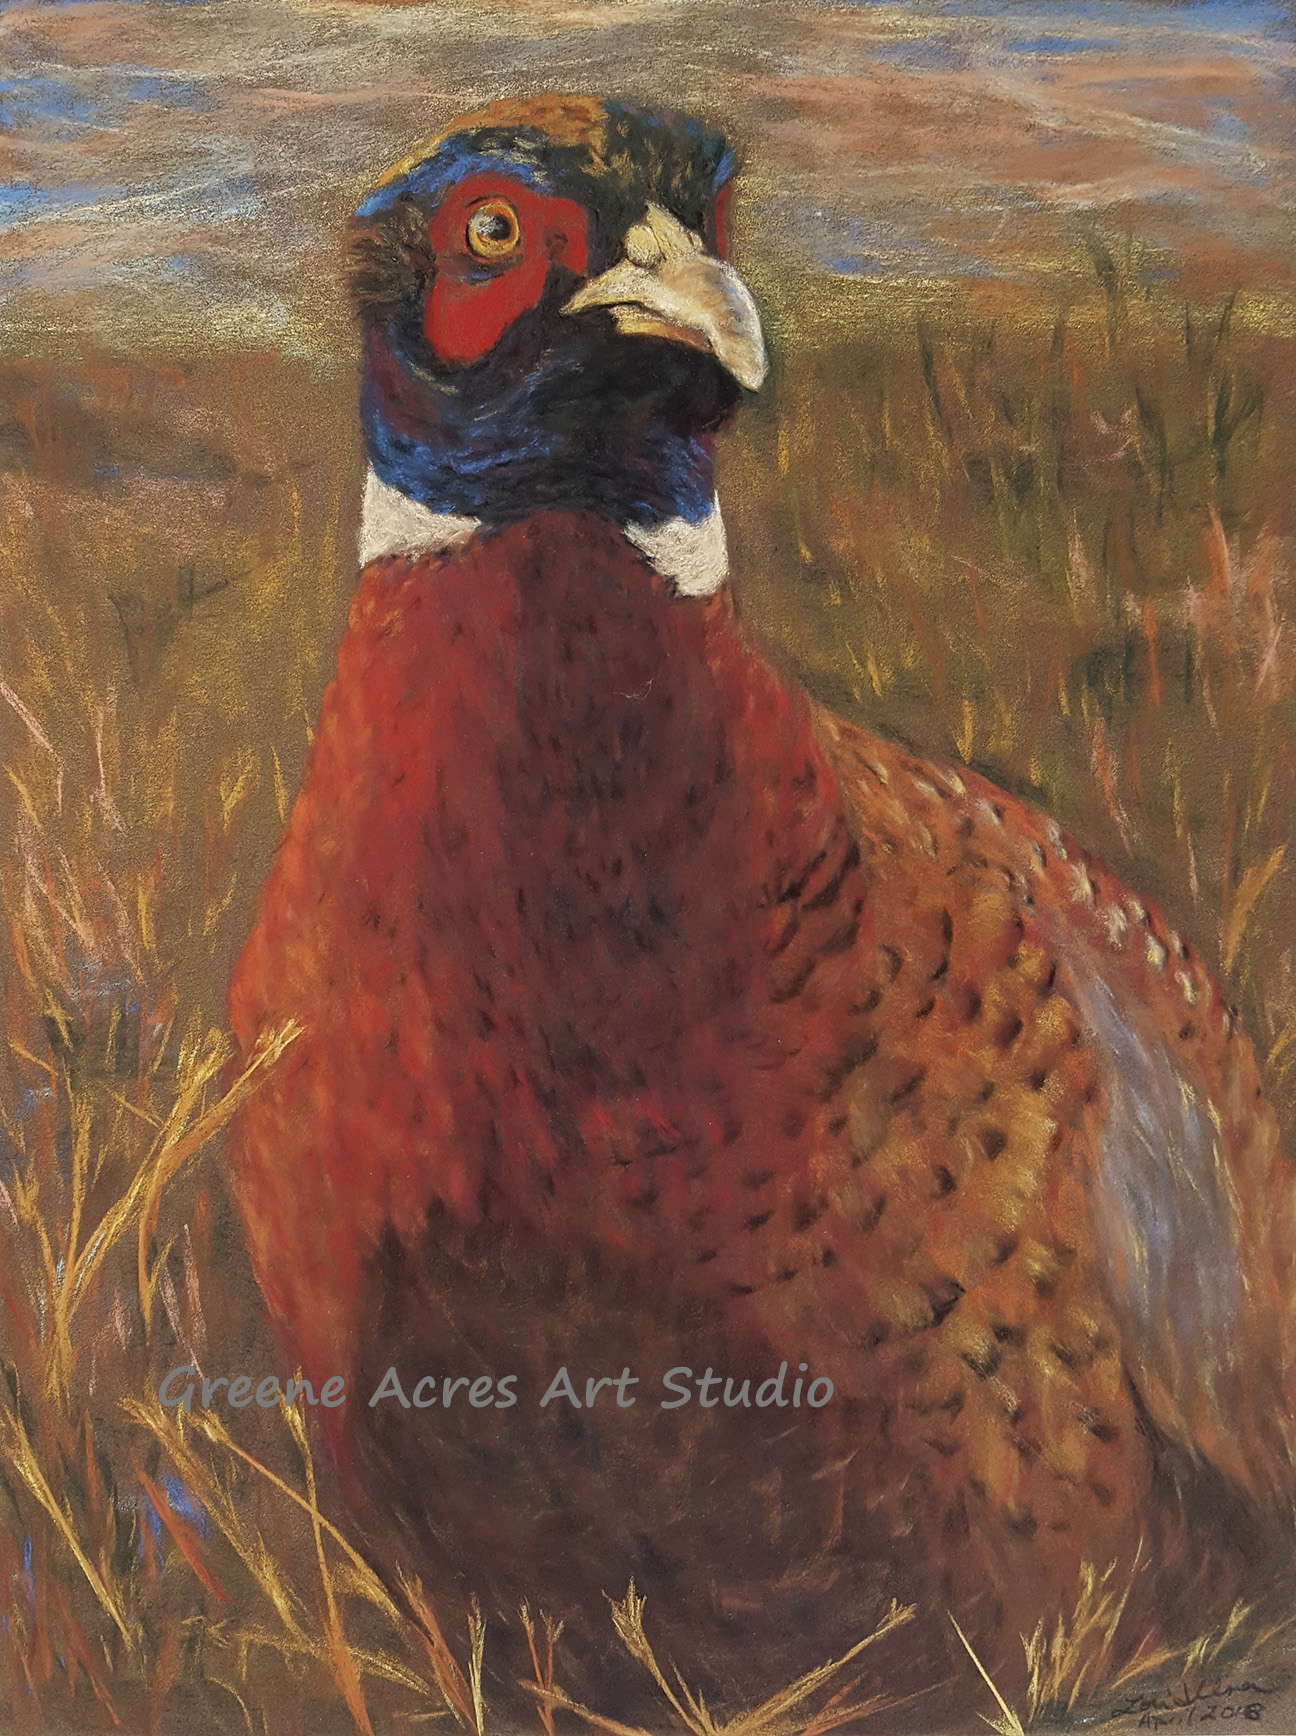 A Pheasant's Direct Gaze